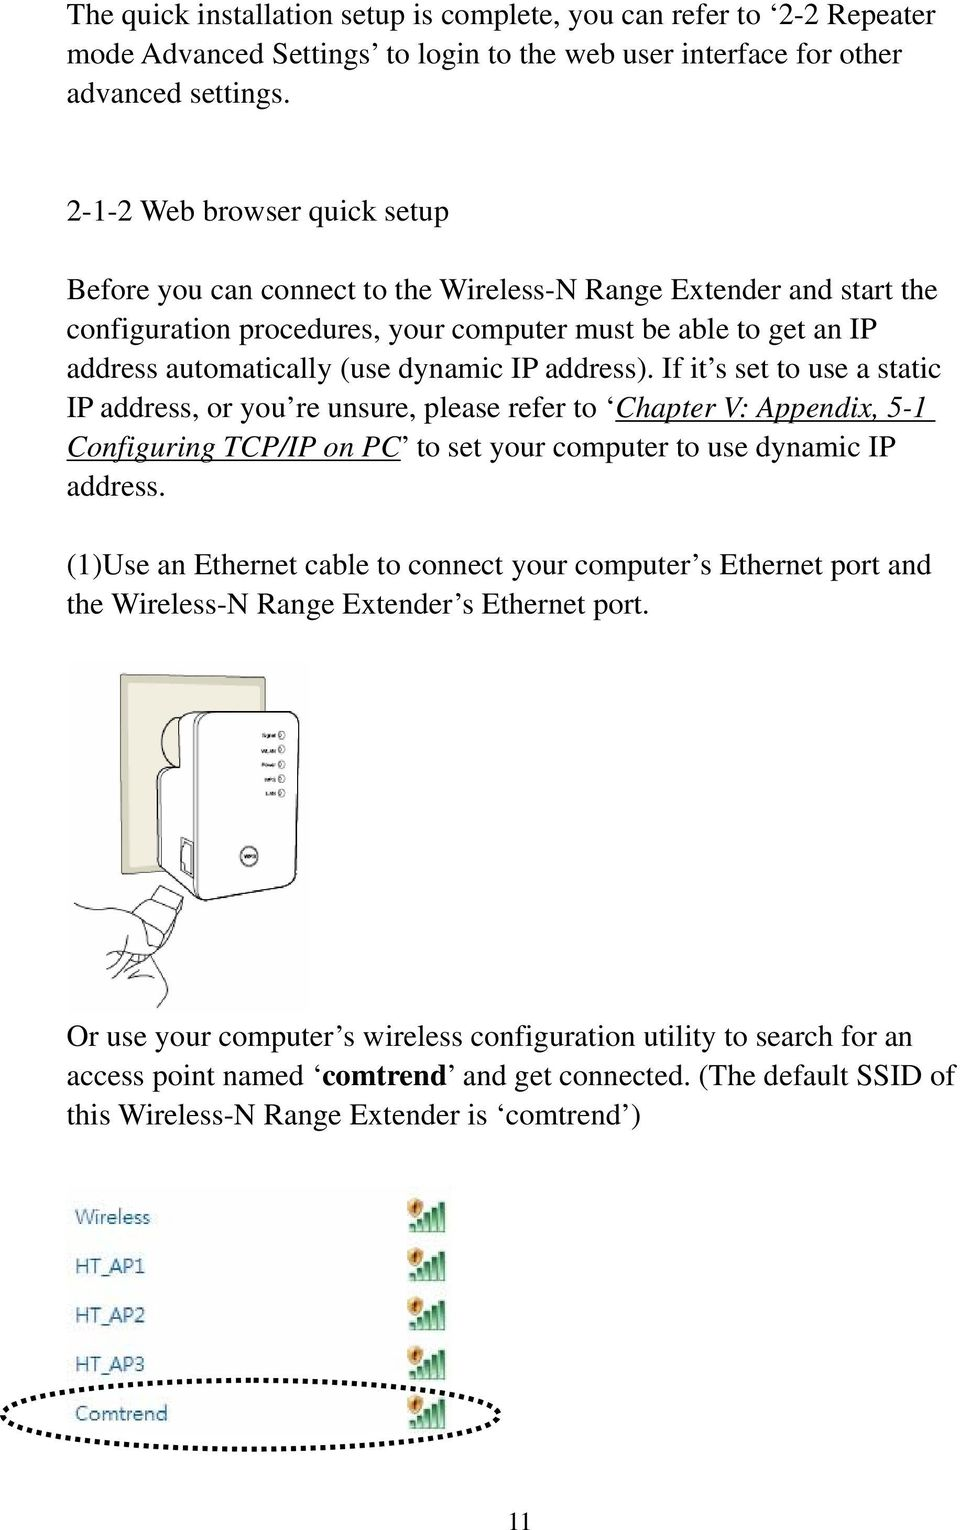 dynamic IP address). If it s set to use a static IP address, or you re unsure, please refer to Chapter V: Appendix, 5-1 Configuring TCP/IP on PC to set your computer to use dynamic IP address.